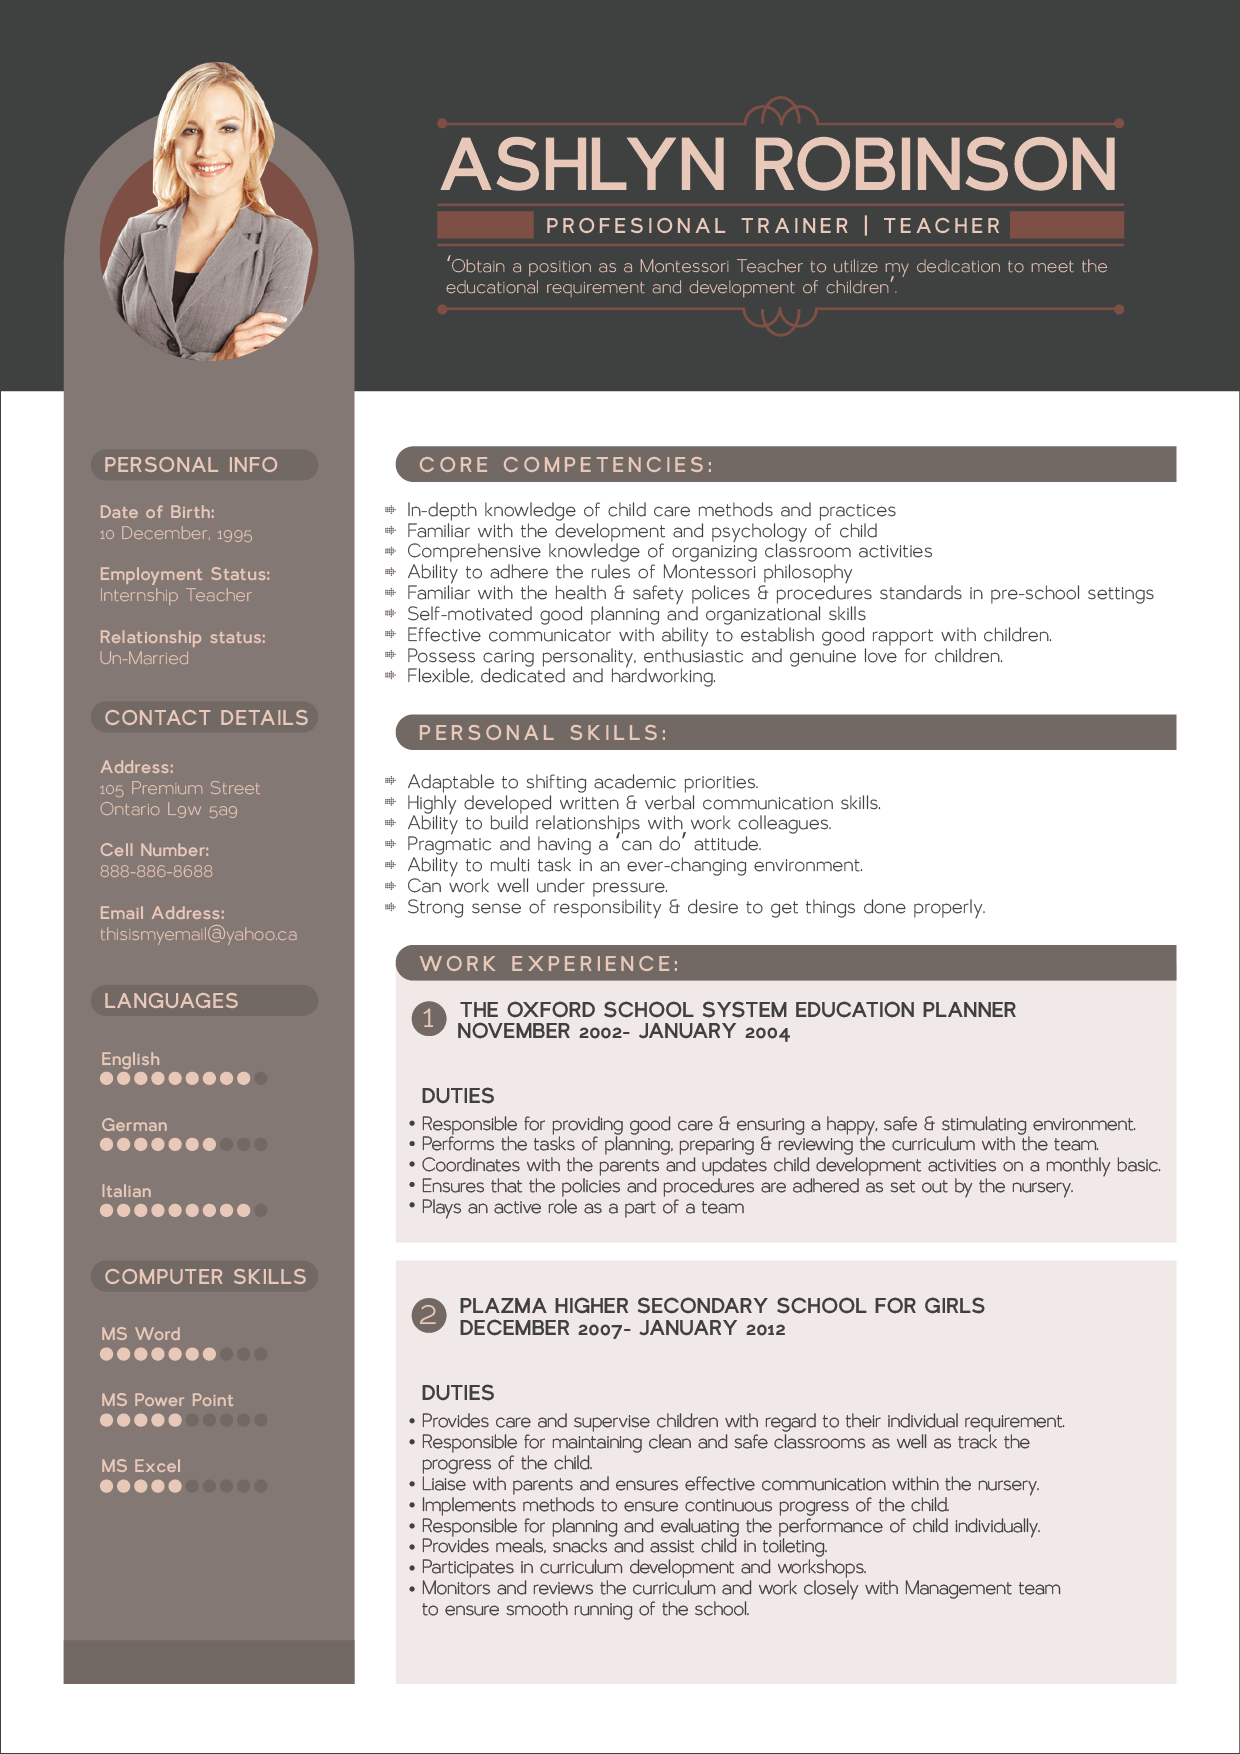 Free Resume CV Design Template for Trainers  Teachers  Good Resume